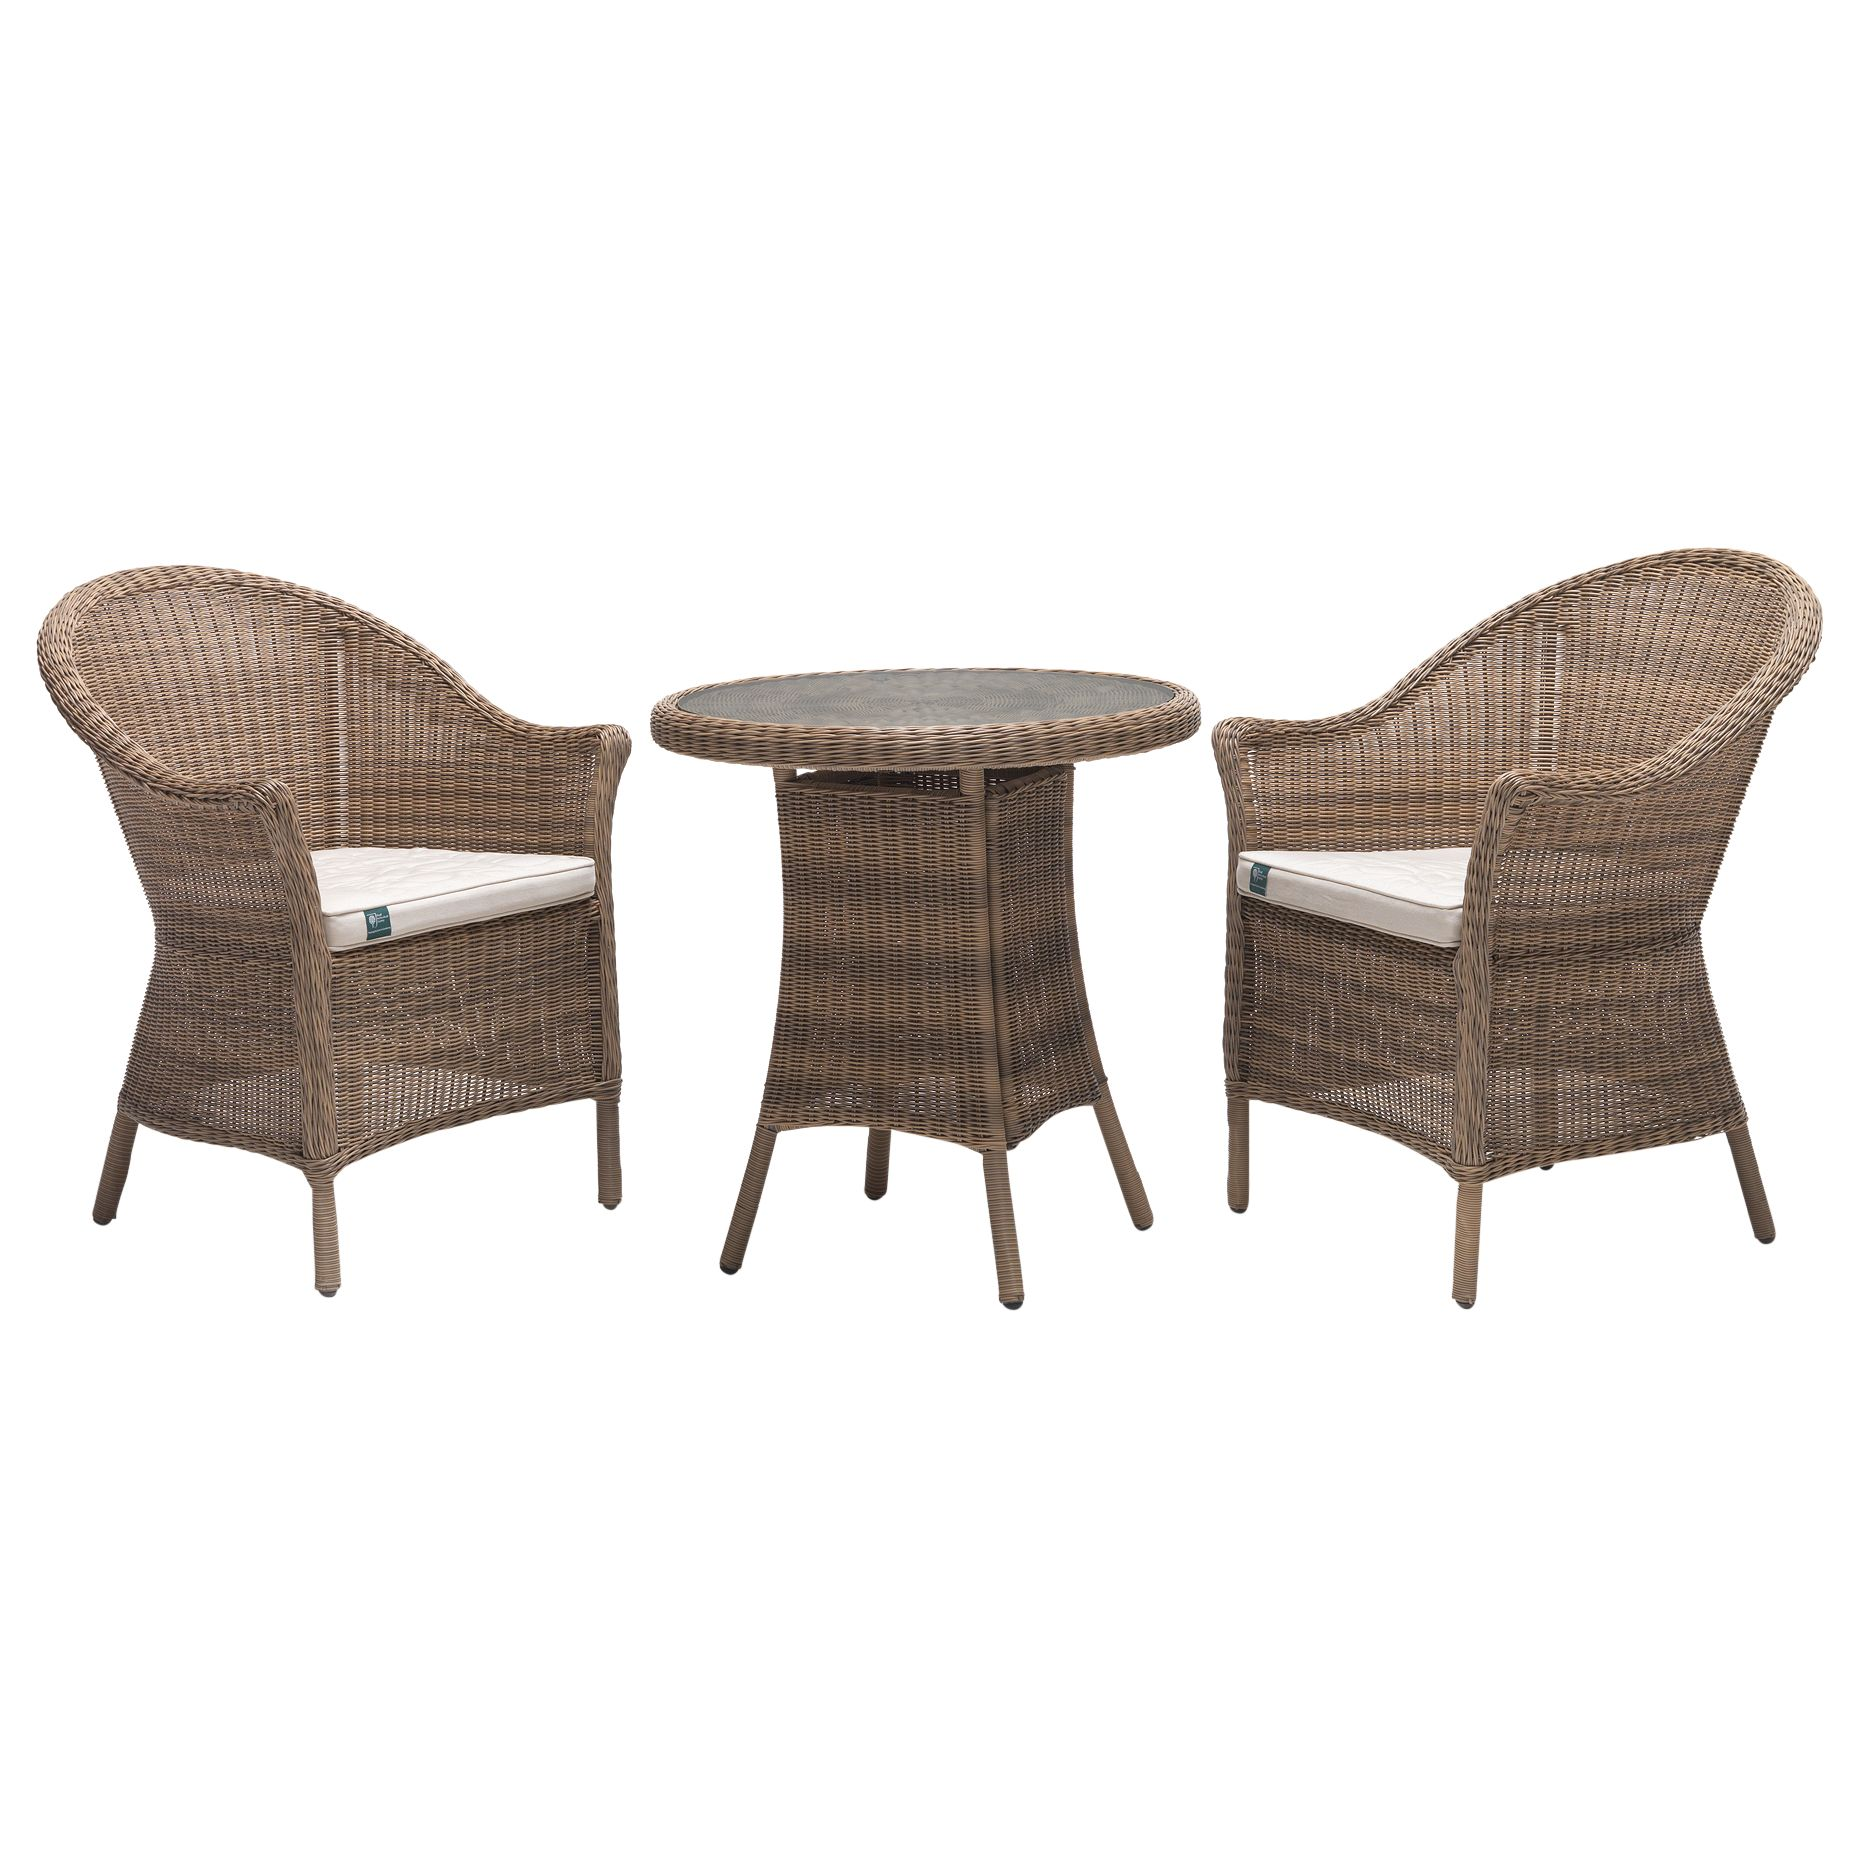 Kettler KETTLER RHS Harlow Carr Garden Bistro Table and Chairs Set, Natural